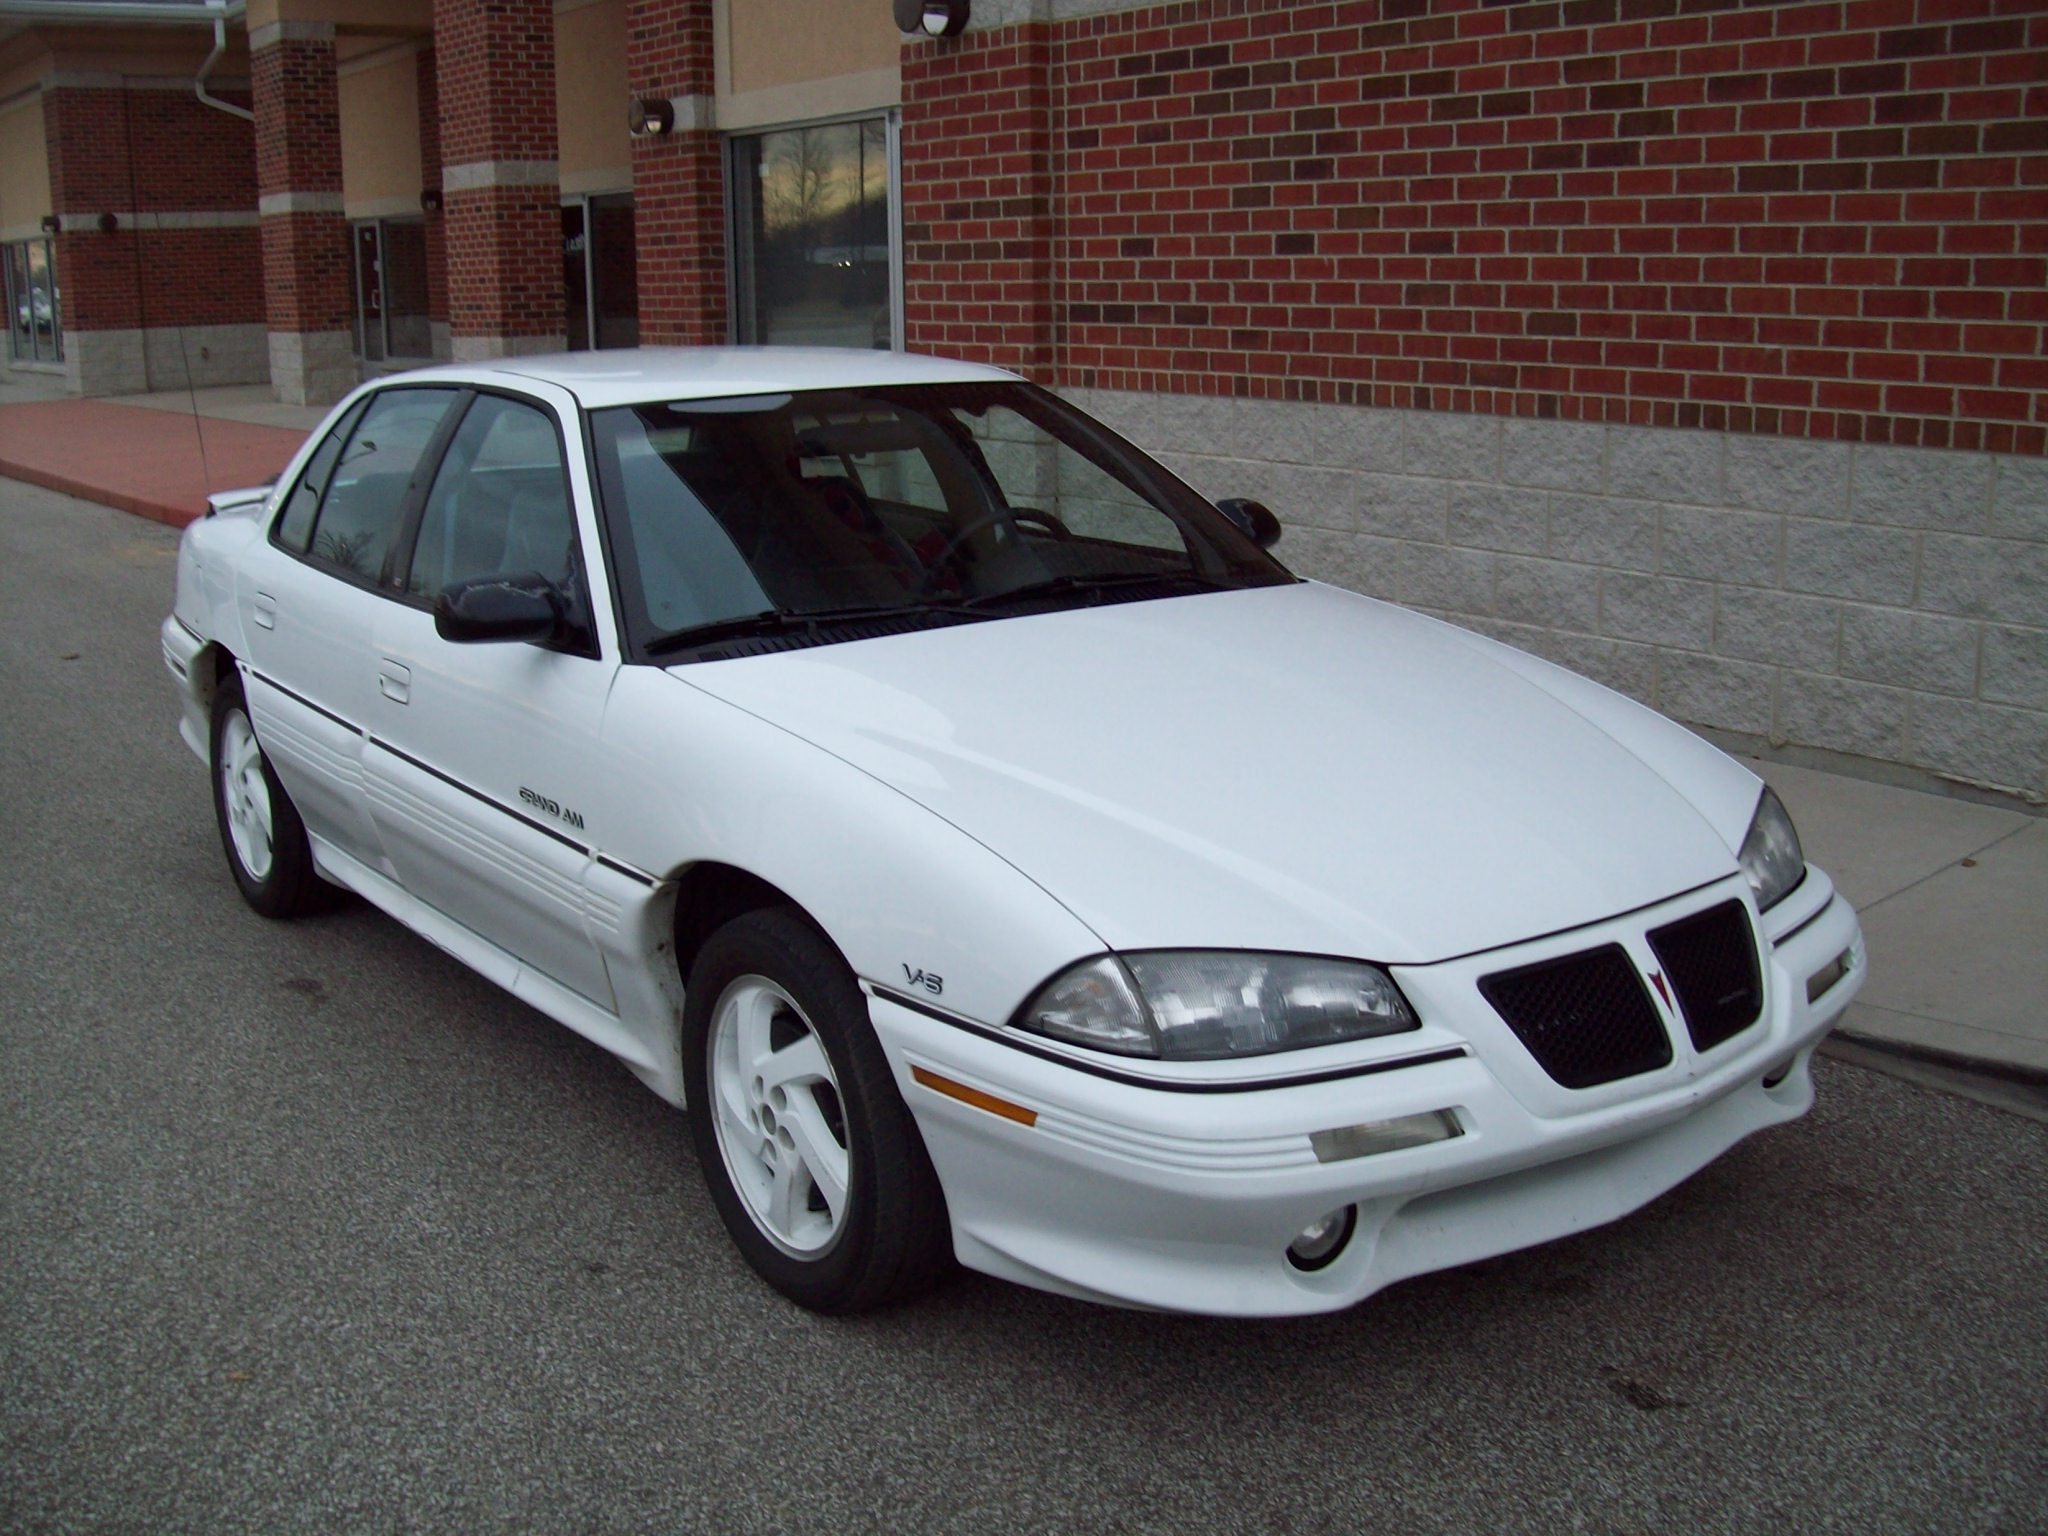 Pontiac Grand Am #2